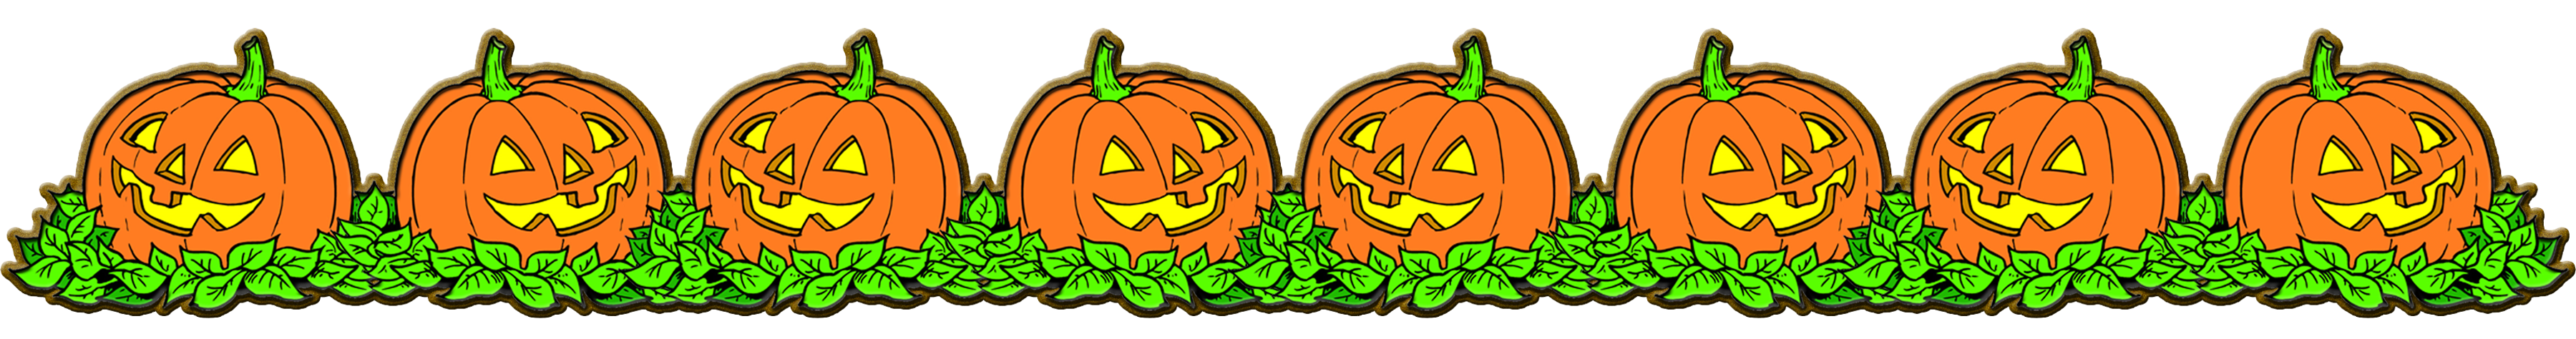 October pumpkin clipart free clipart transparent library 28+ Collection of Halloween Candy Border Clipart | High quality ... clipart transparent library